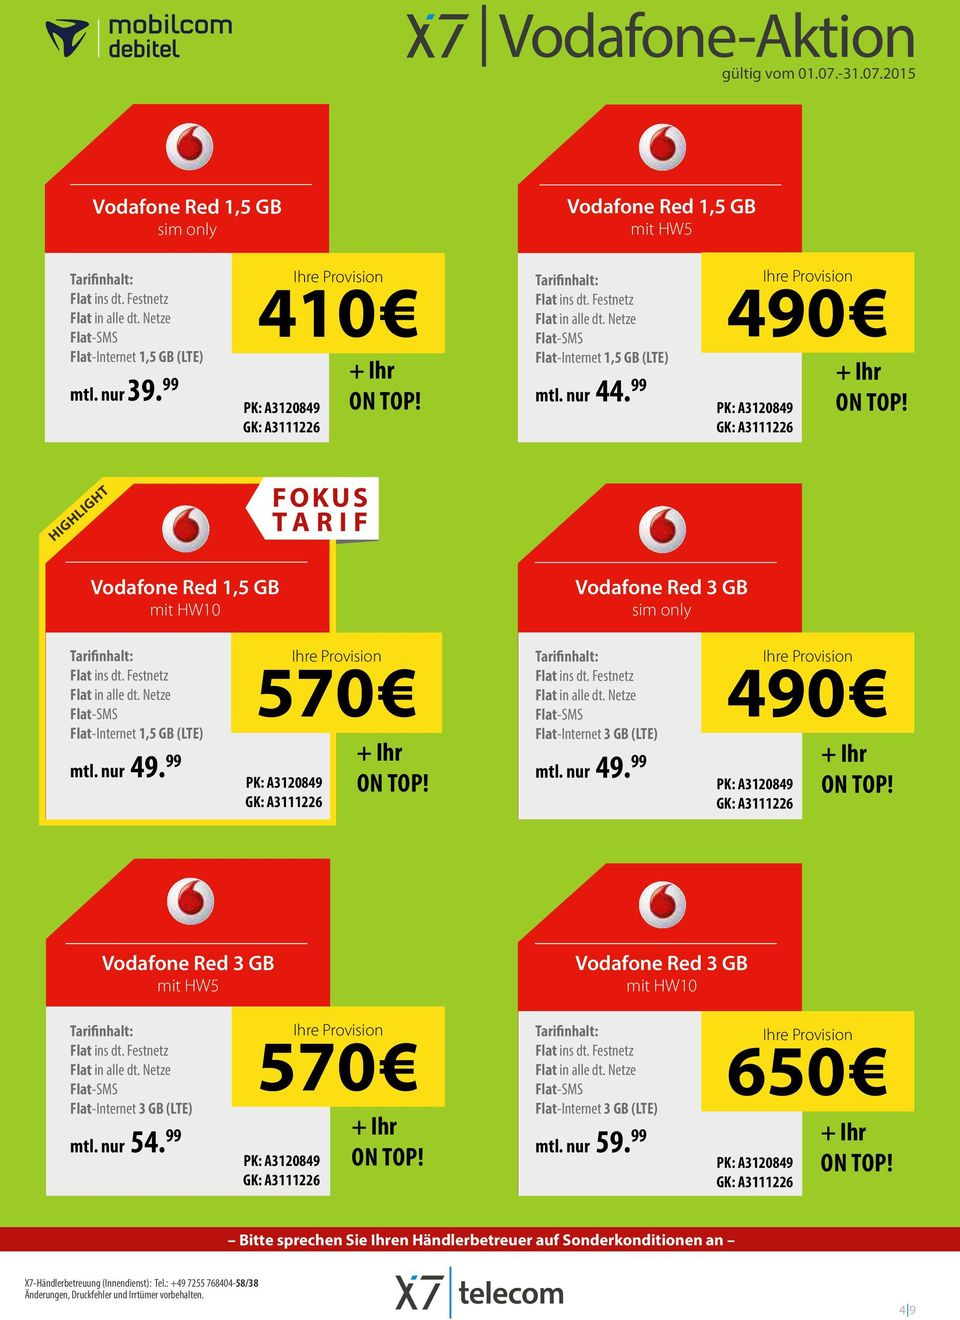 99 490 Vodafone Red 1,5 GB Vodafone Red 3 GB Flat-Internet 1,5 GB (LTE) mtl. nur 49.